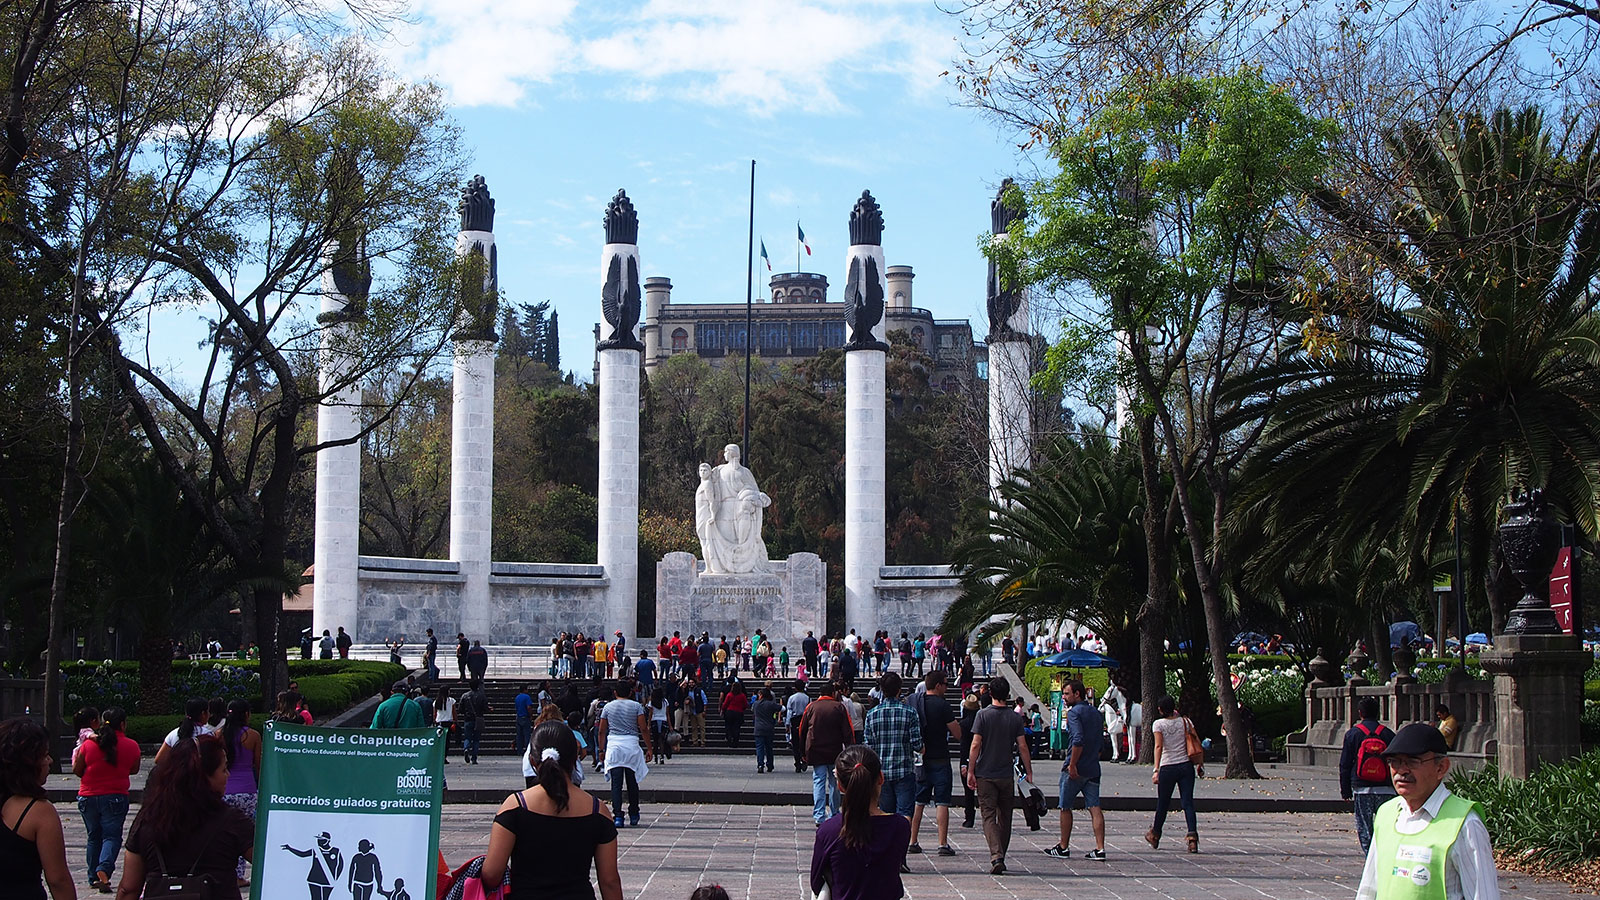 Chapultepec Park, with the castle in the background.